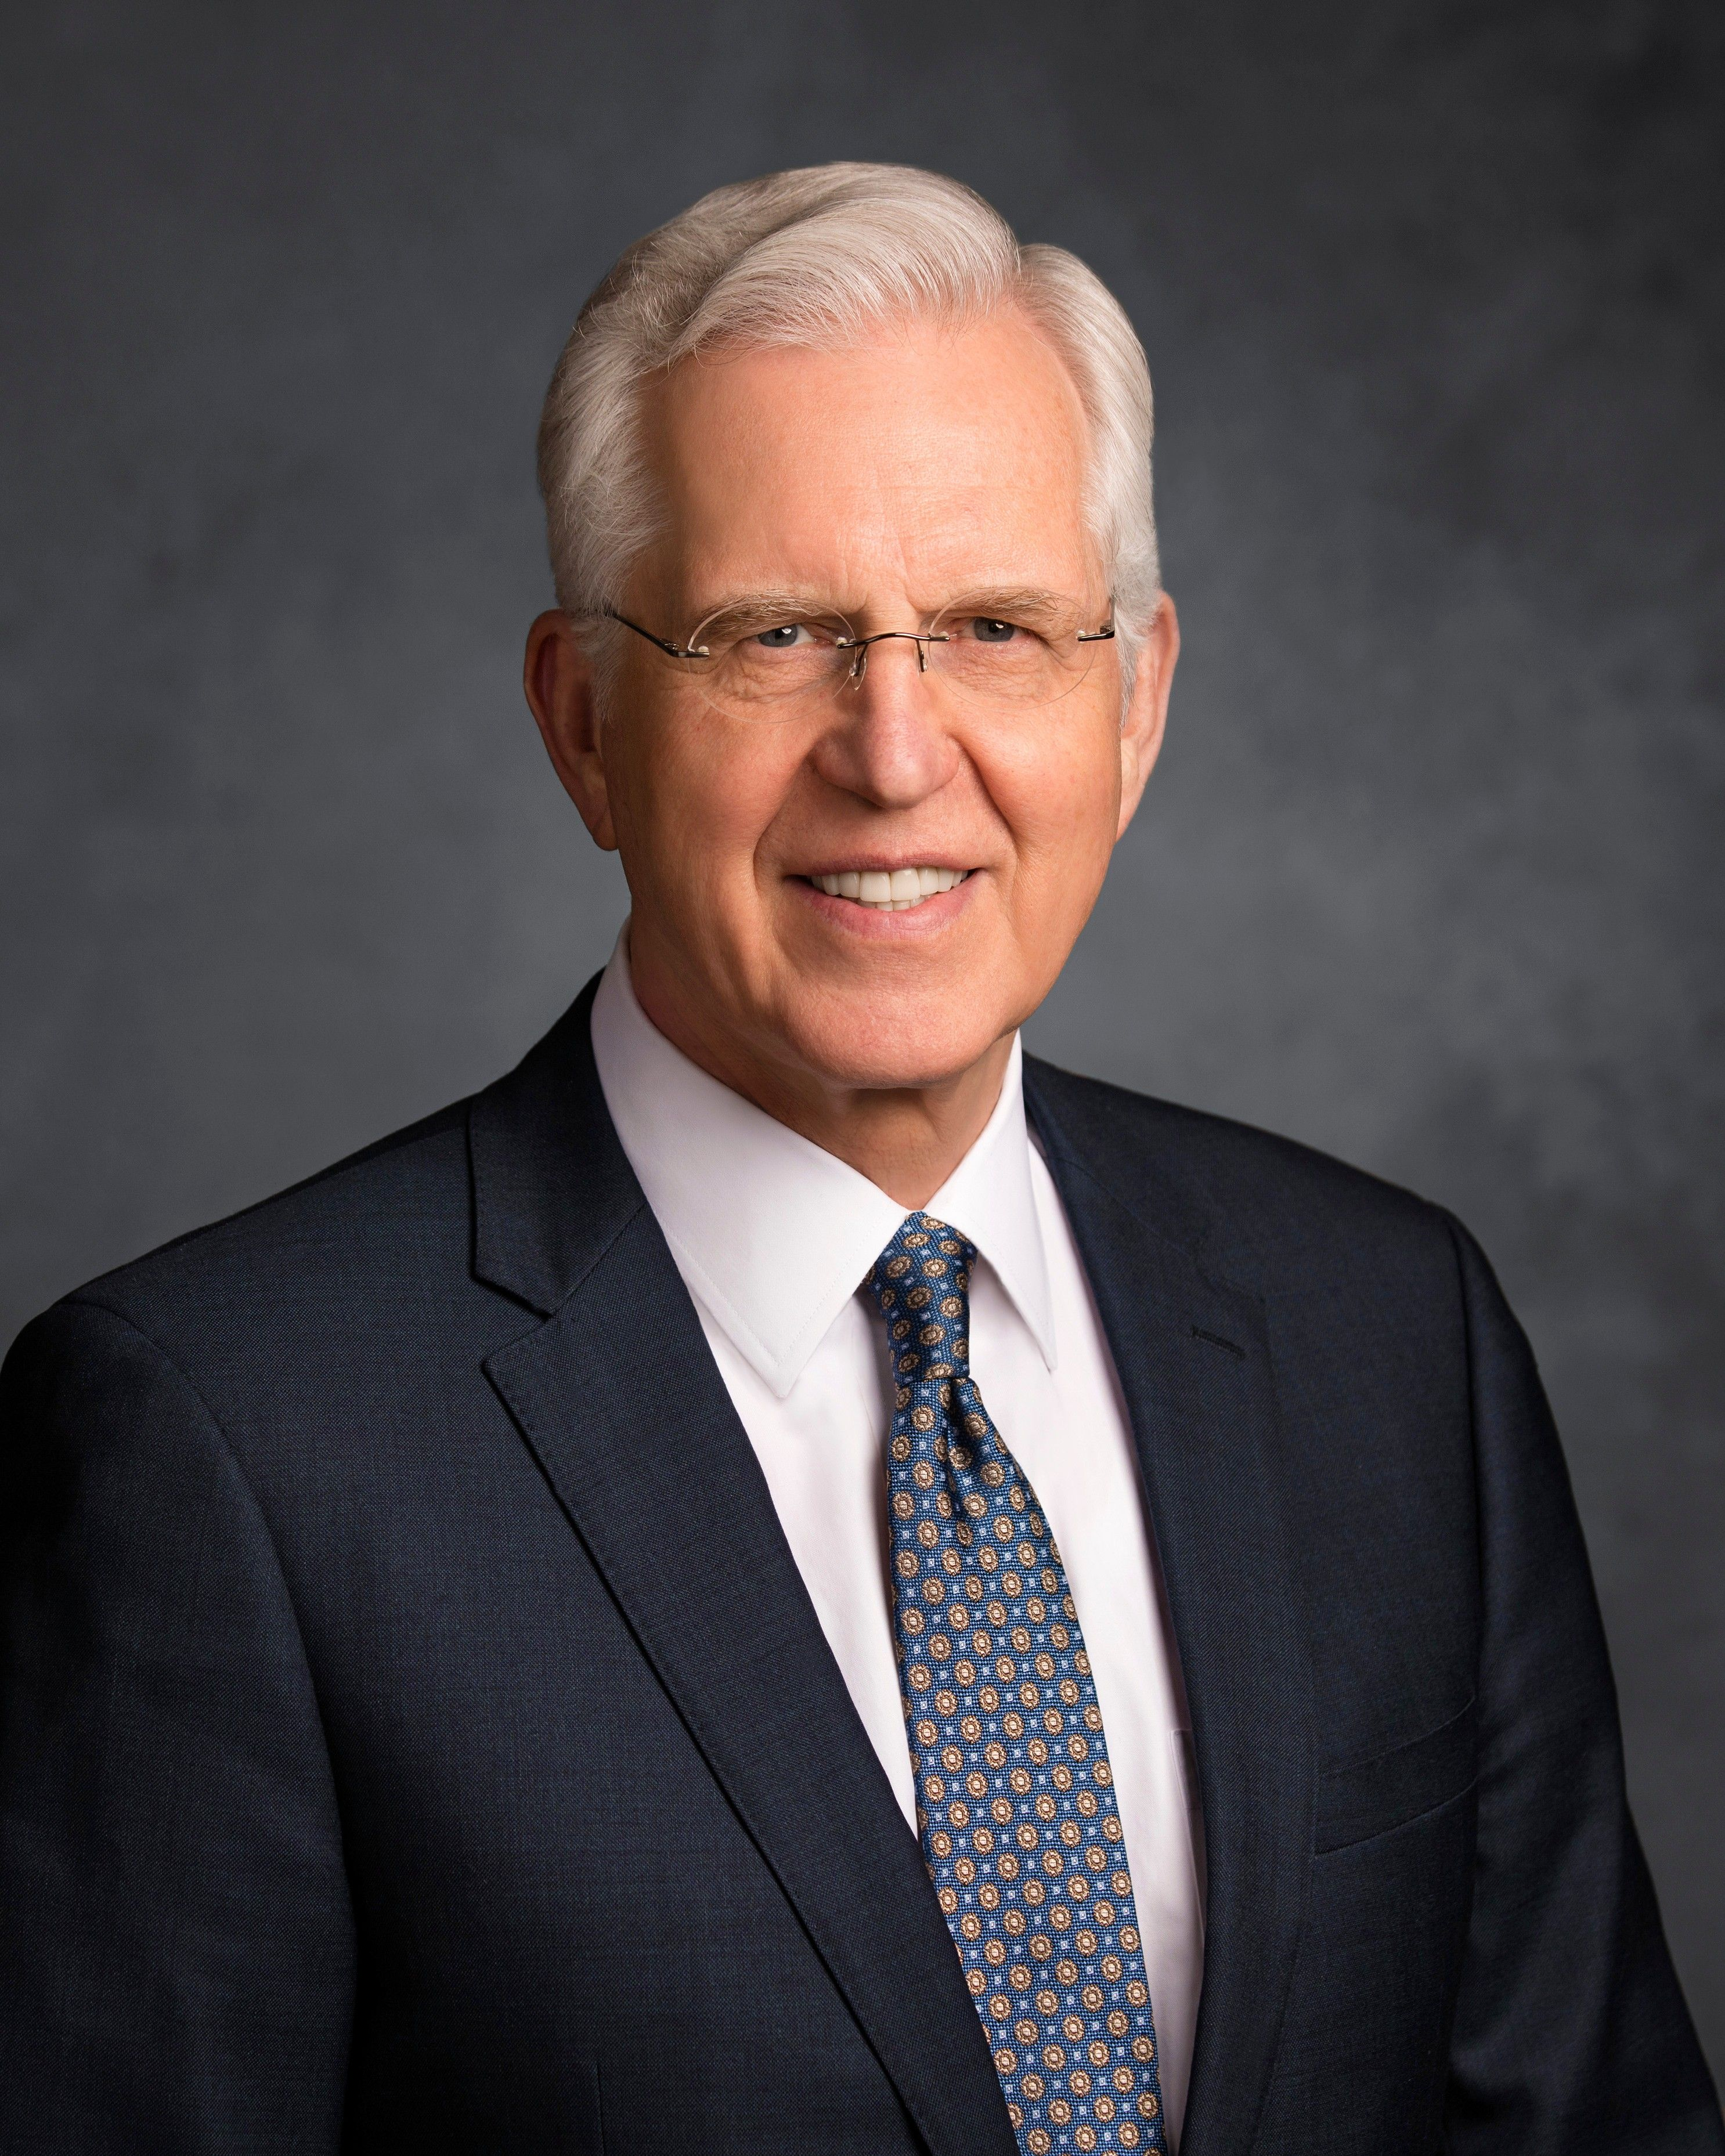 The Official Portrait of D. Todd Christofferson.